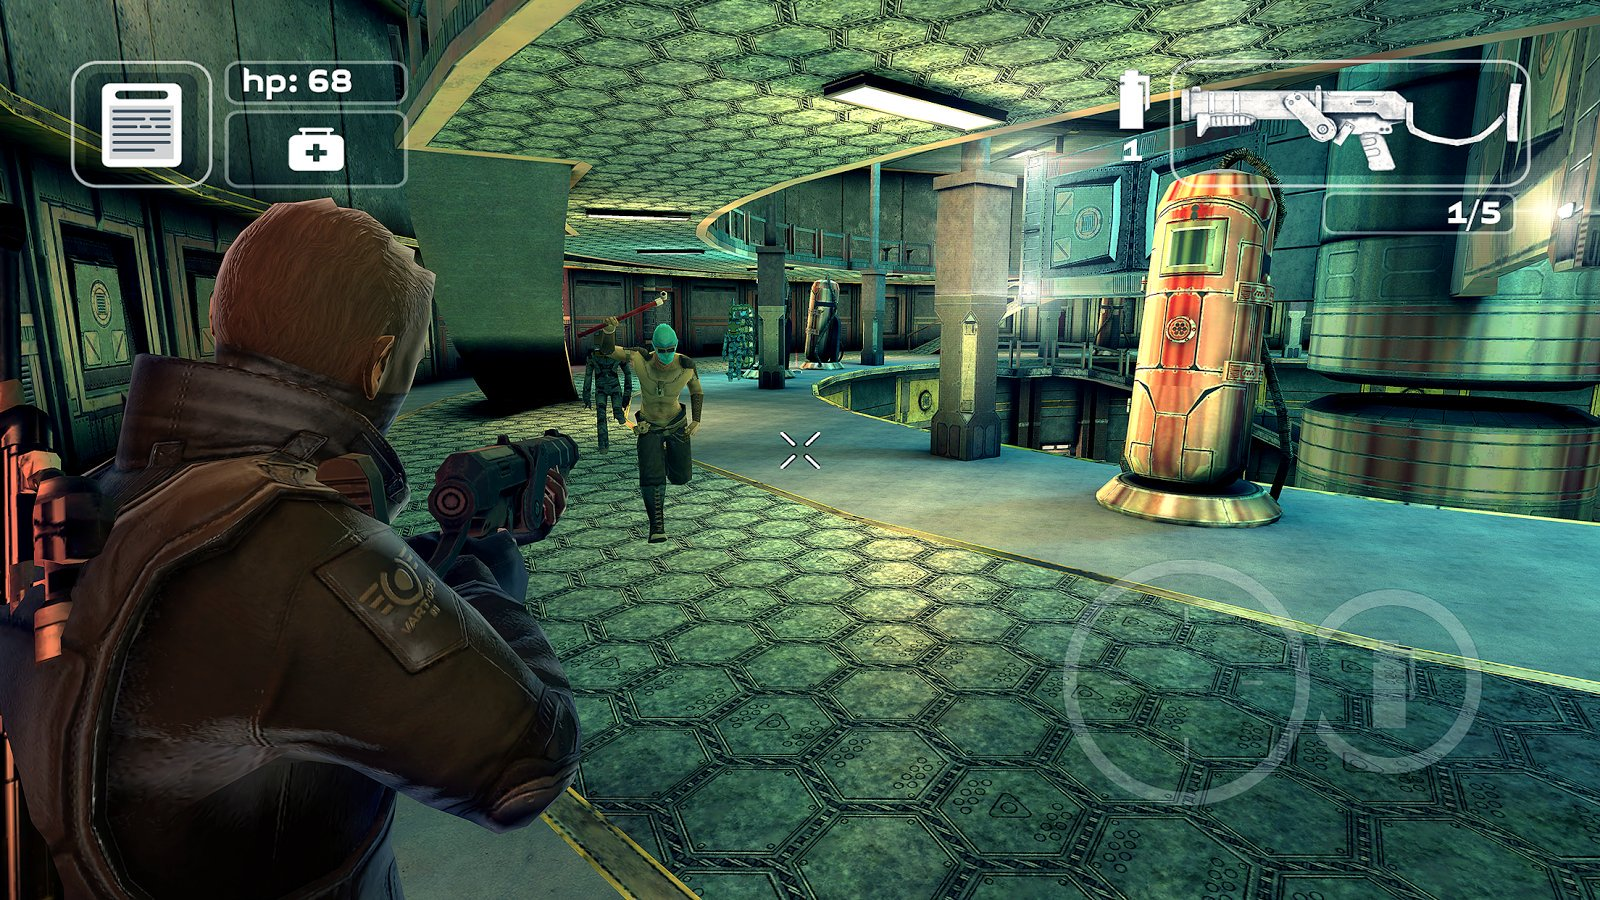 third person shooter video game - 1280×720